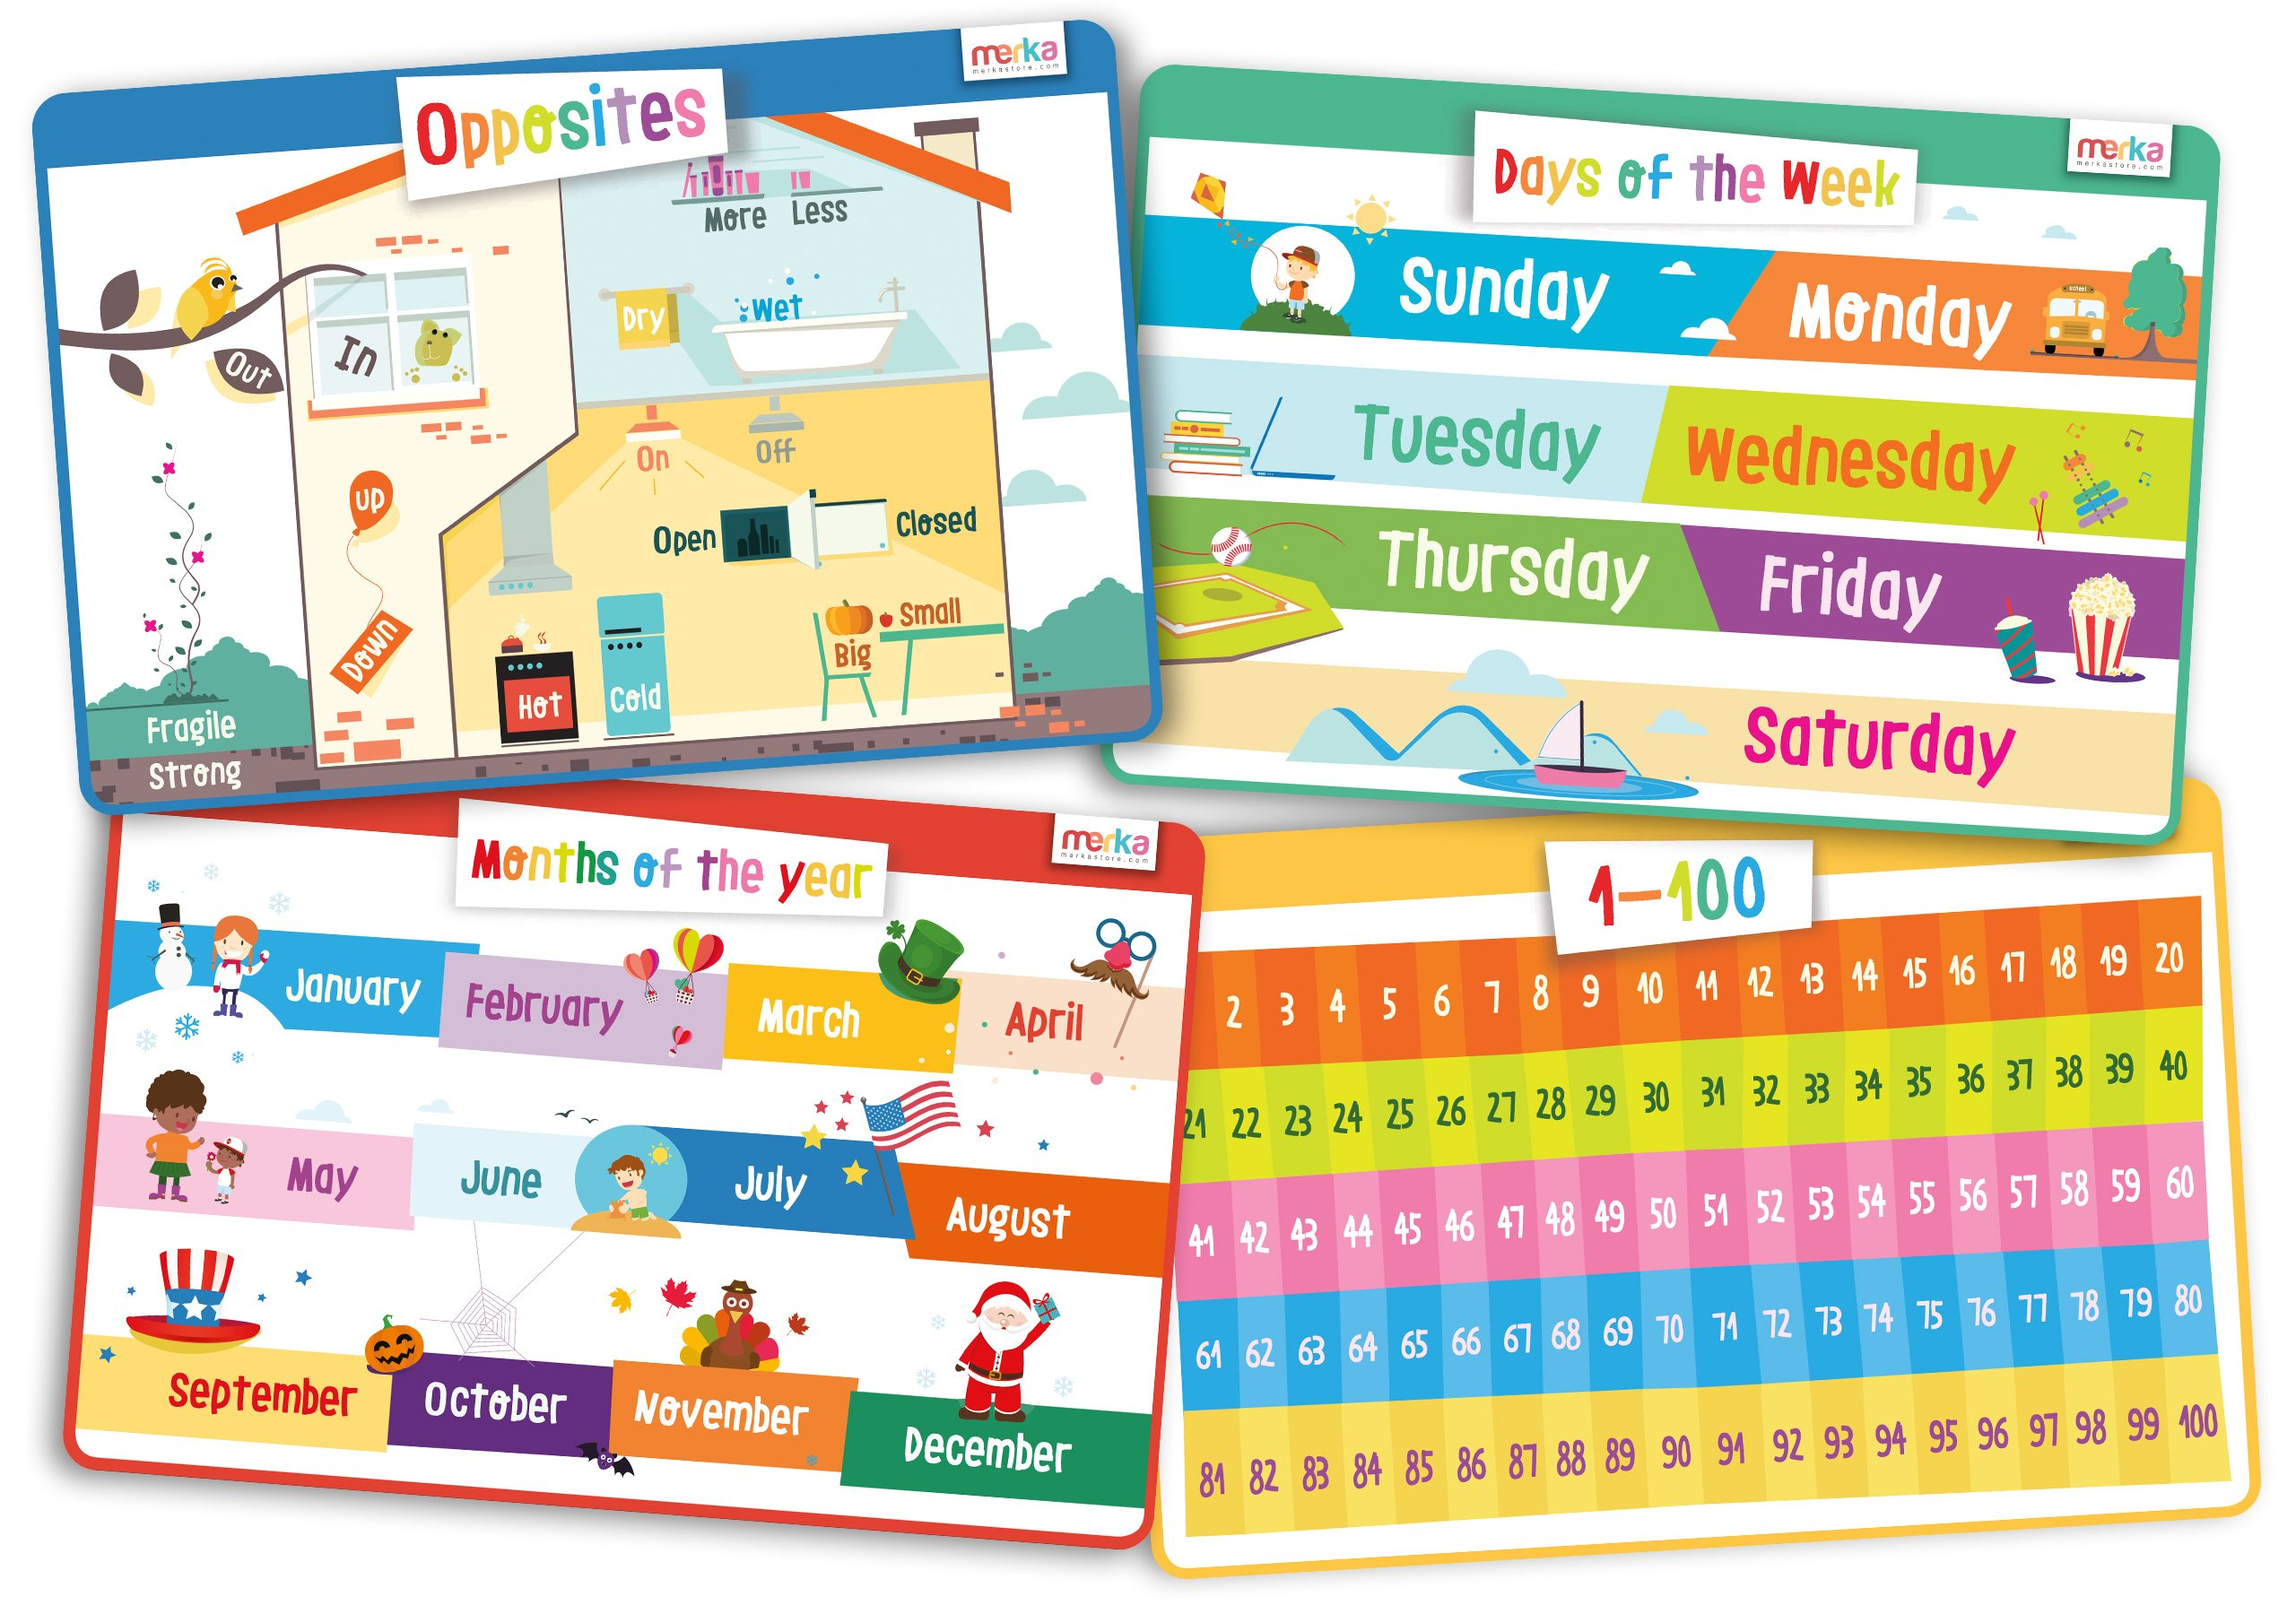 merka Educational Kids Placemats Set of 4: Opposites, Days of The Week, Months of The Year, Learn to Count 1-100 - Bundle - Non Slip Washable